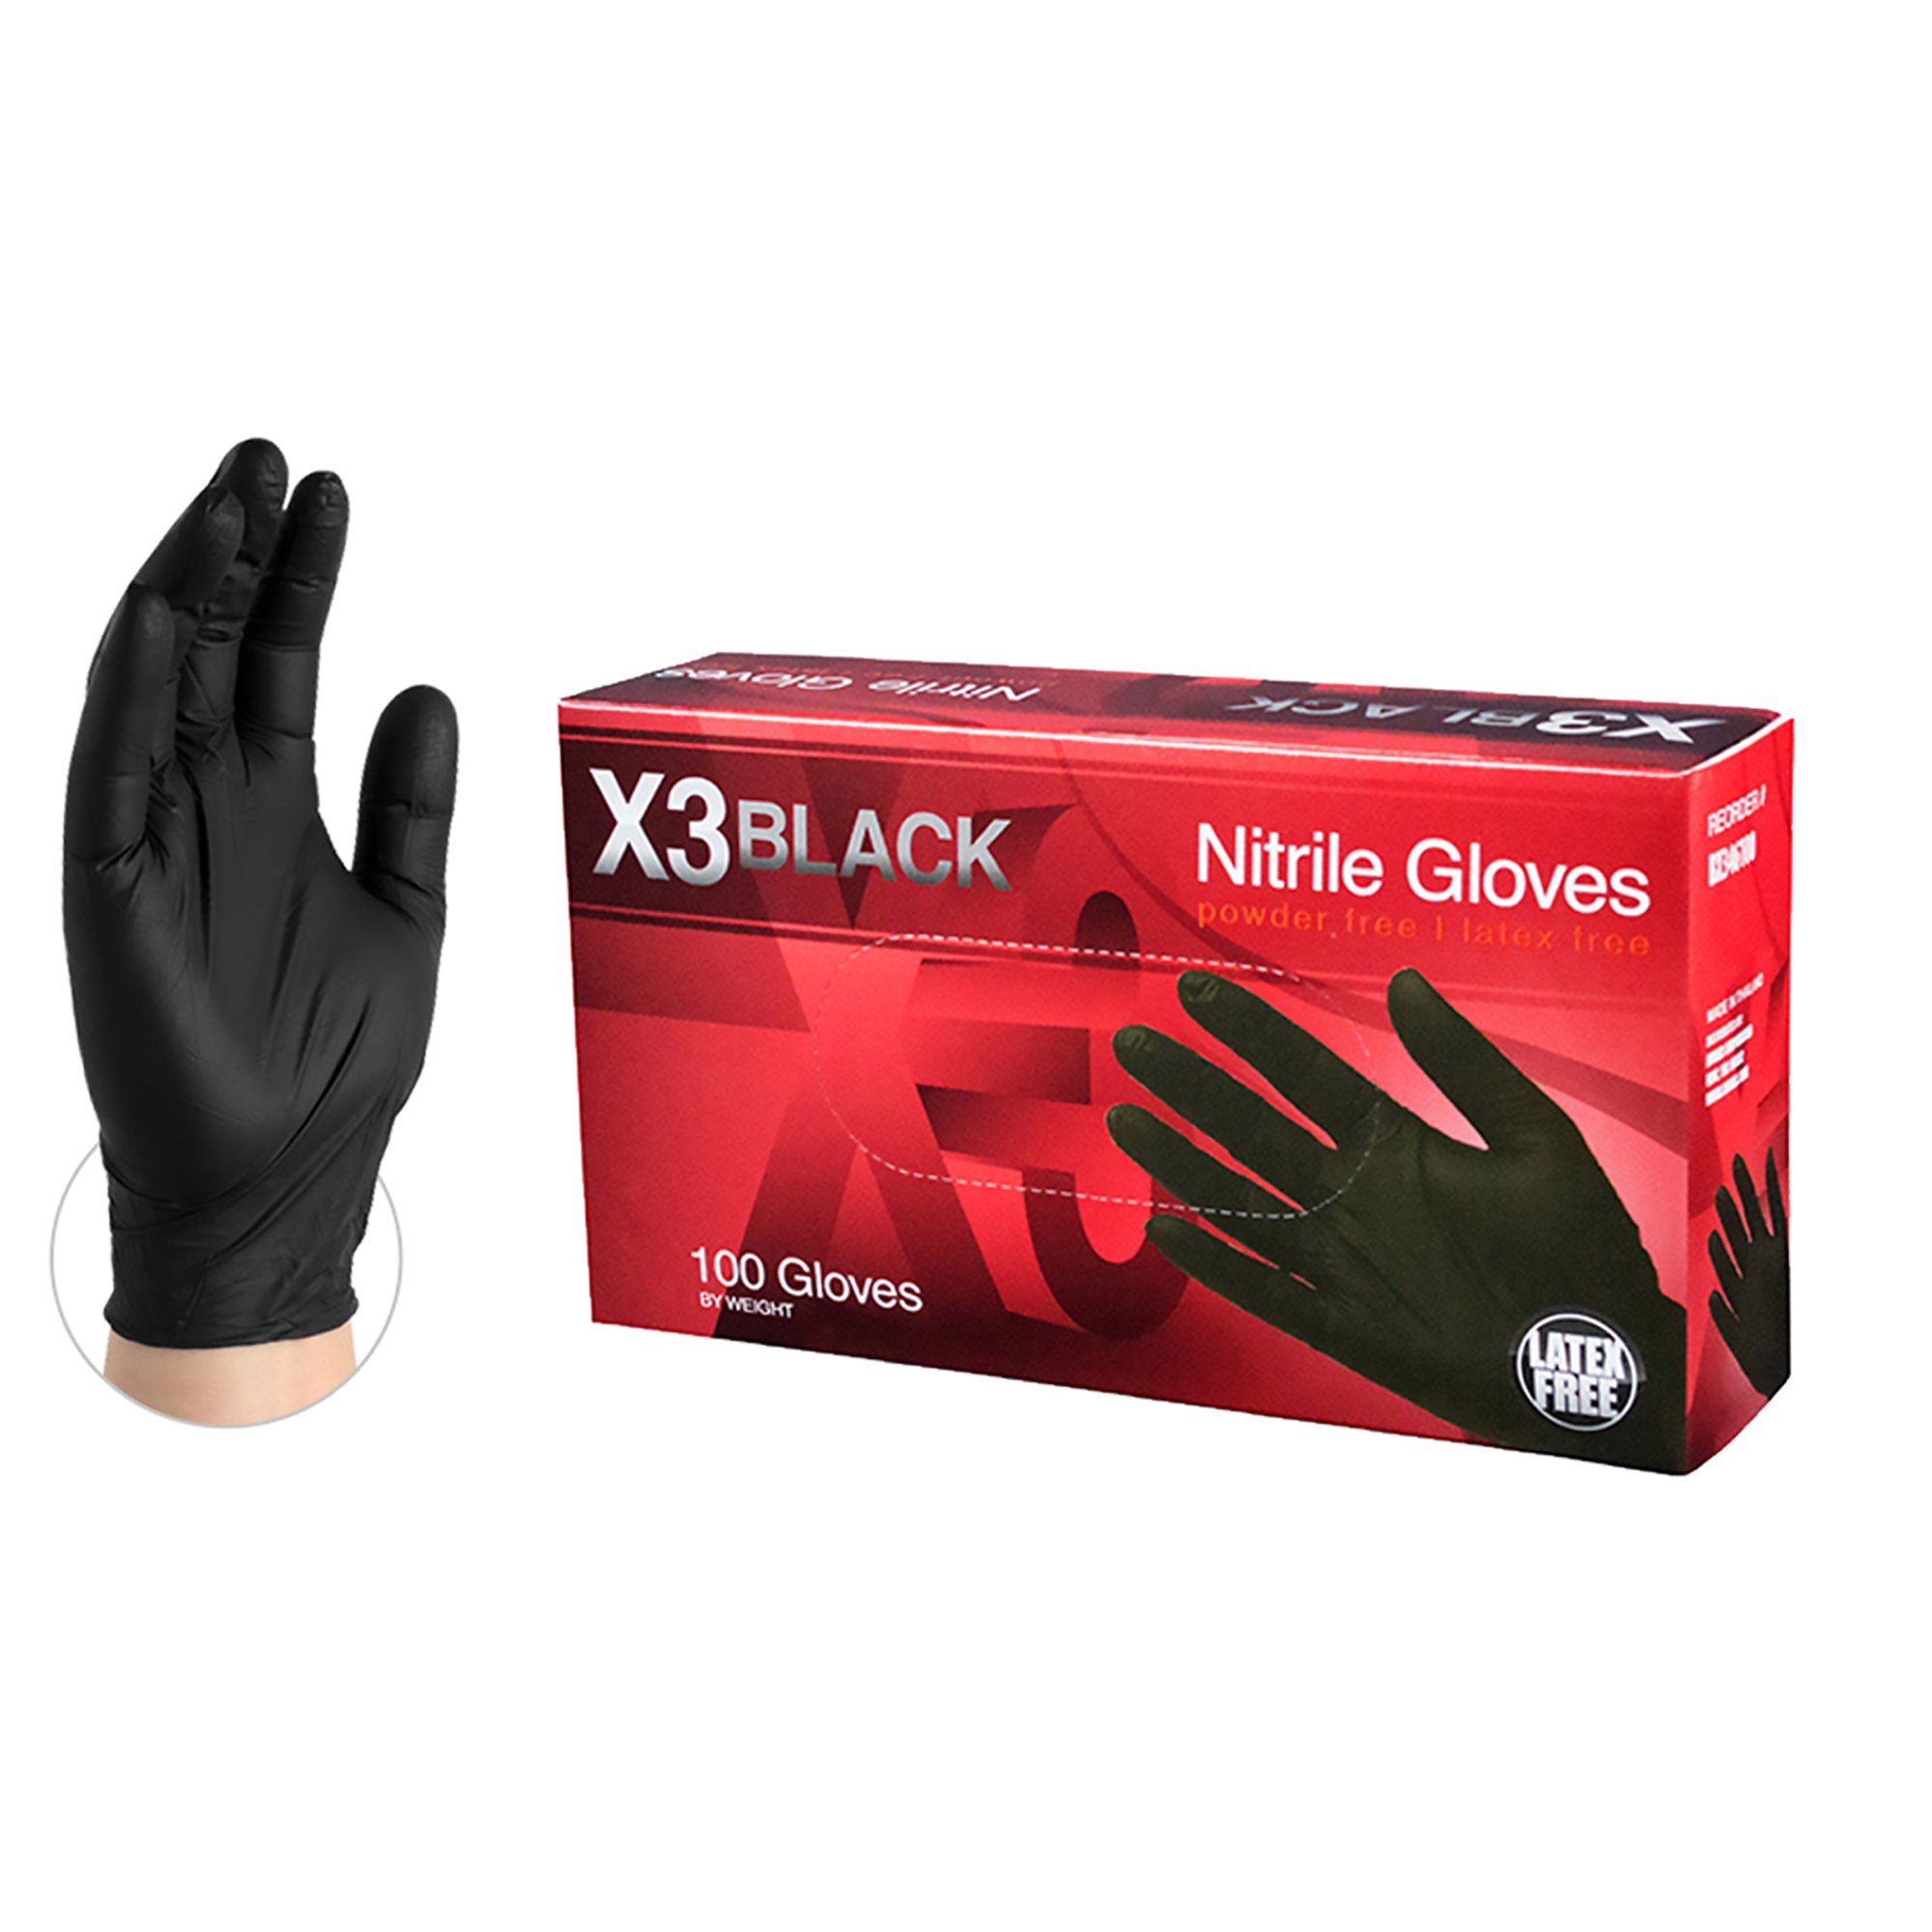 X3 Industrial Black Nitrile Gloves - 3 mil, Latex Free, Powder Free, Textured, Disposable, Large, BX346100, Case of 1000 by Ammex